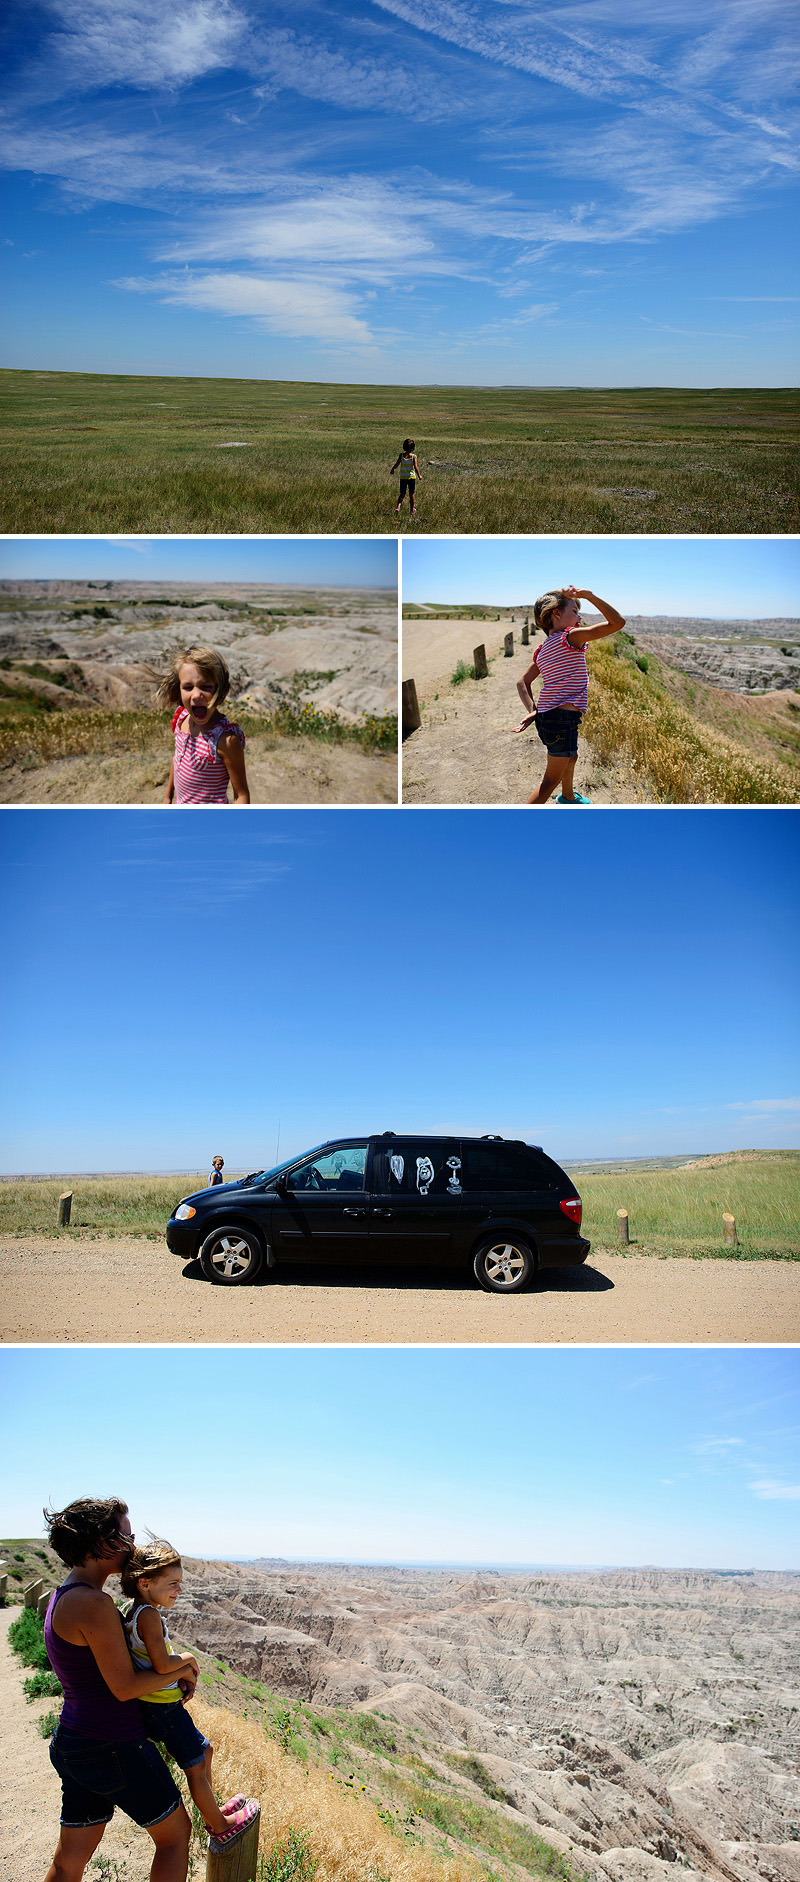 summer vacation to badlands